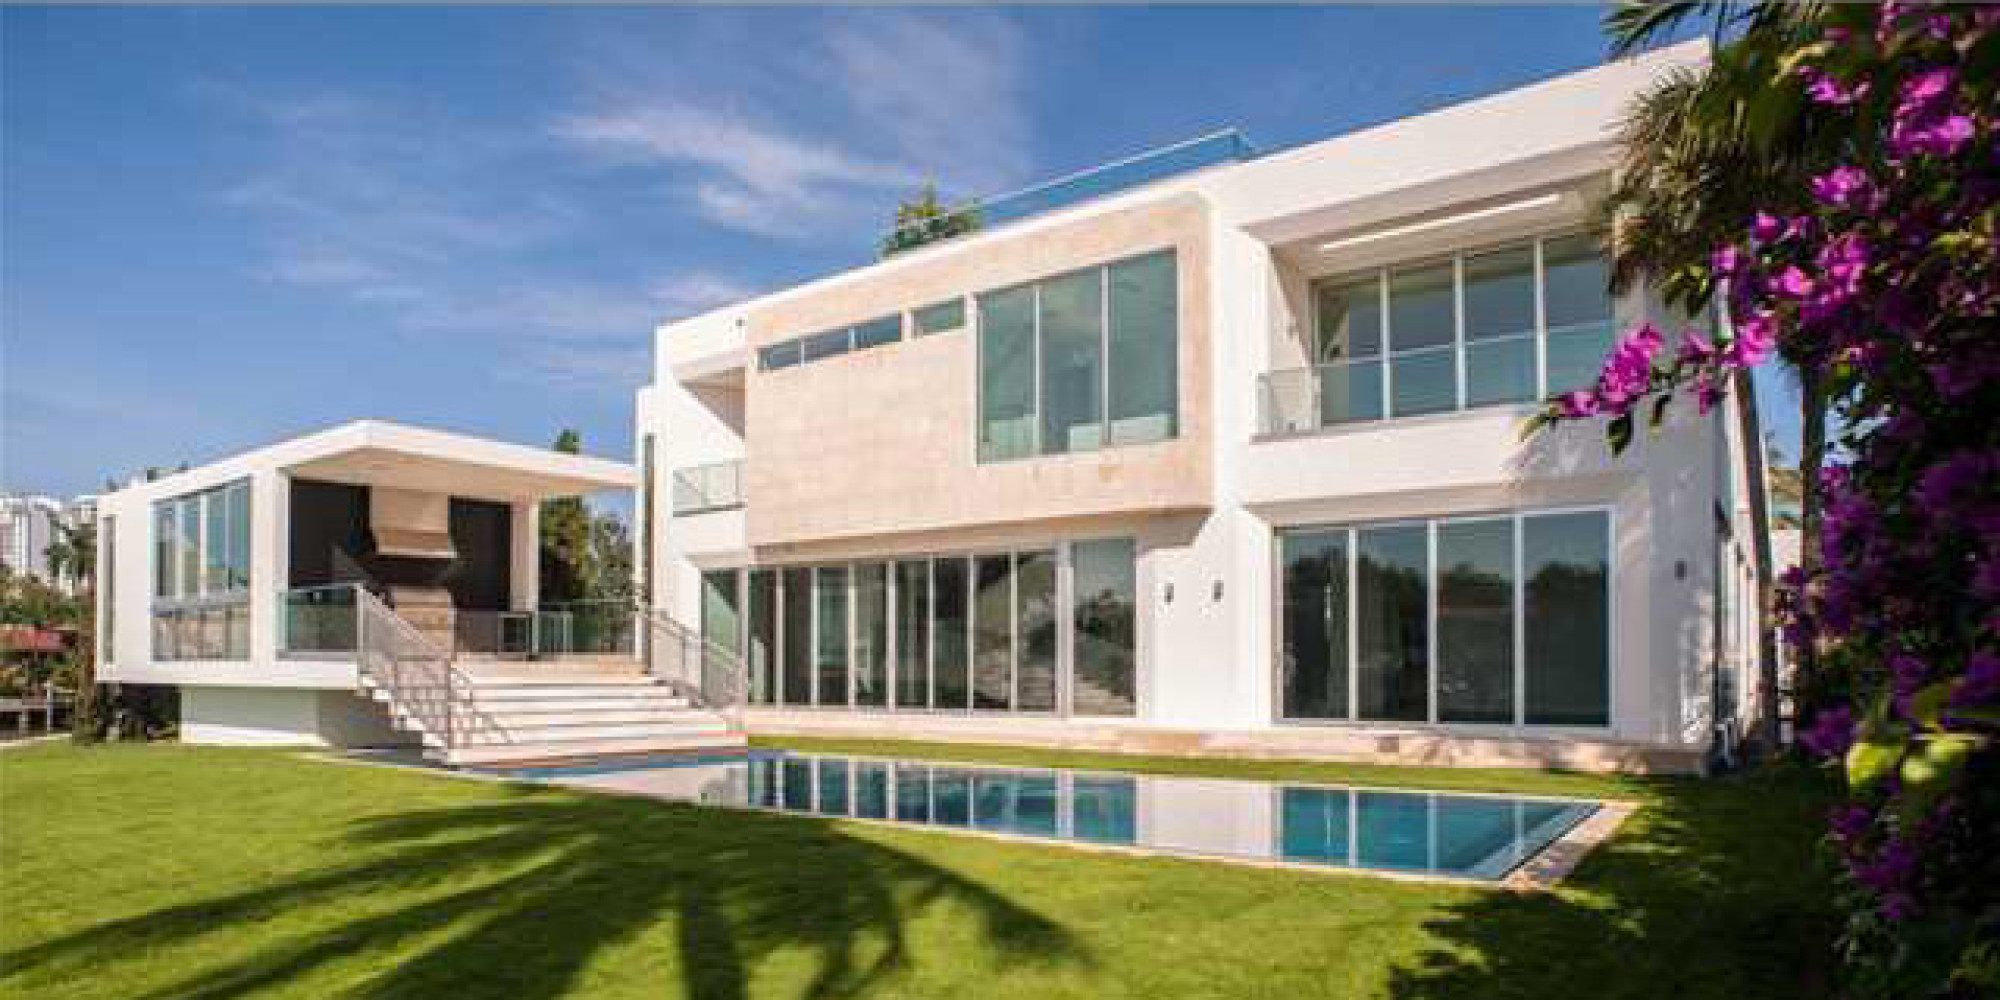 Miami 39 s most expensive rentals will make your jaw drop for The most modern house